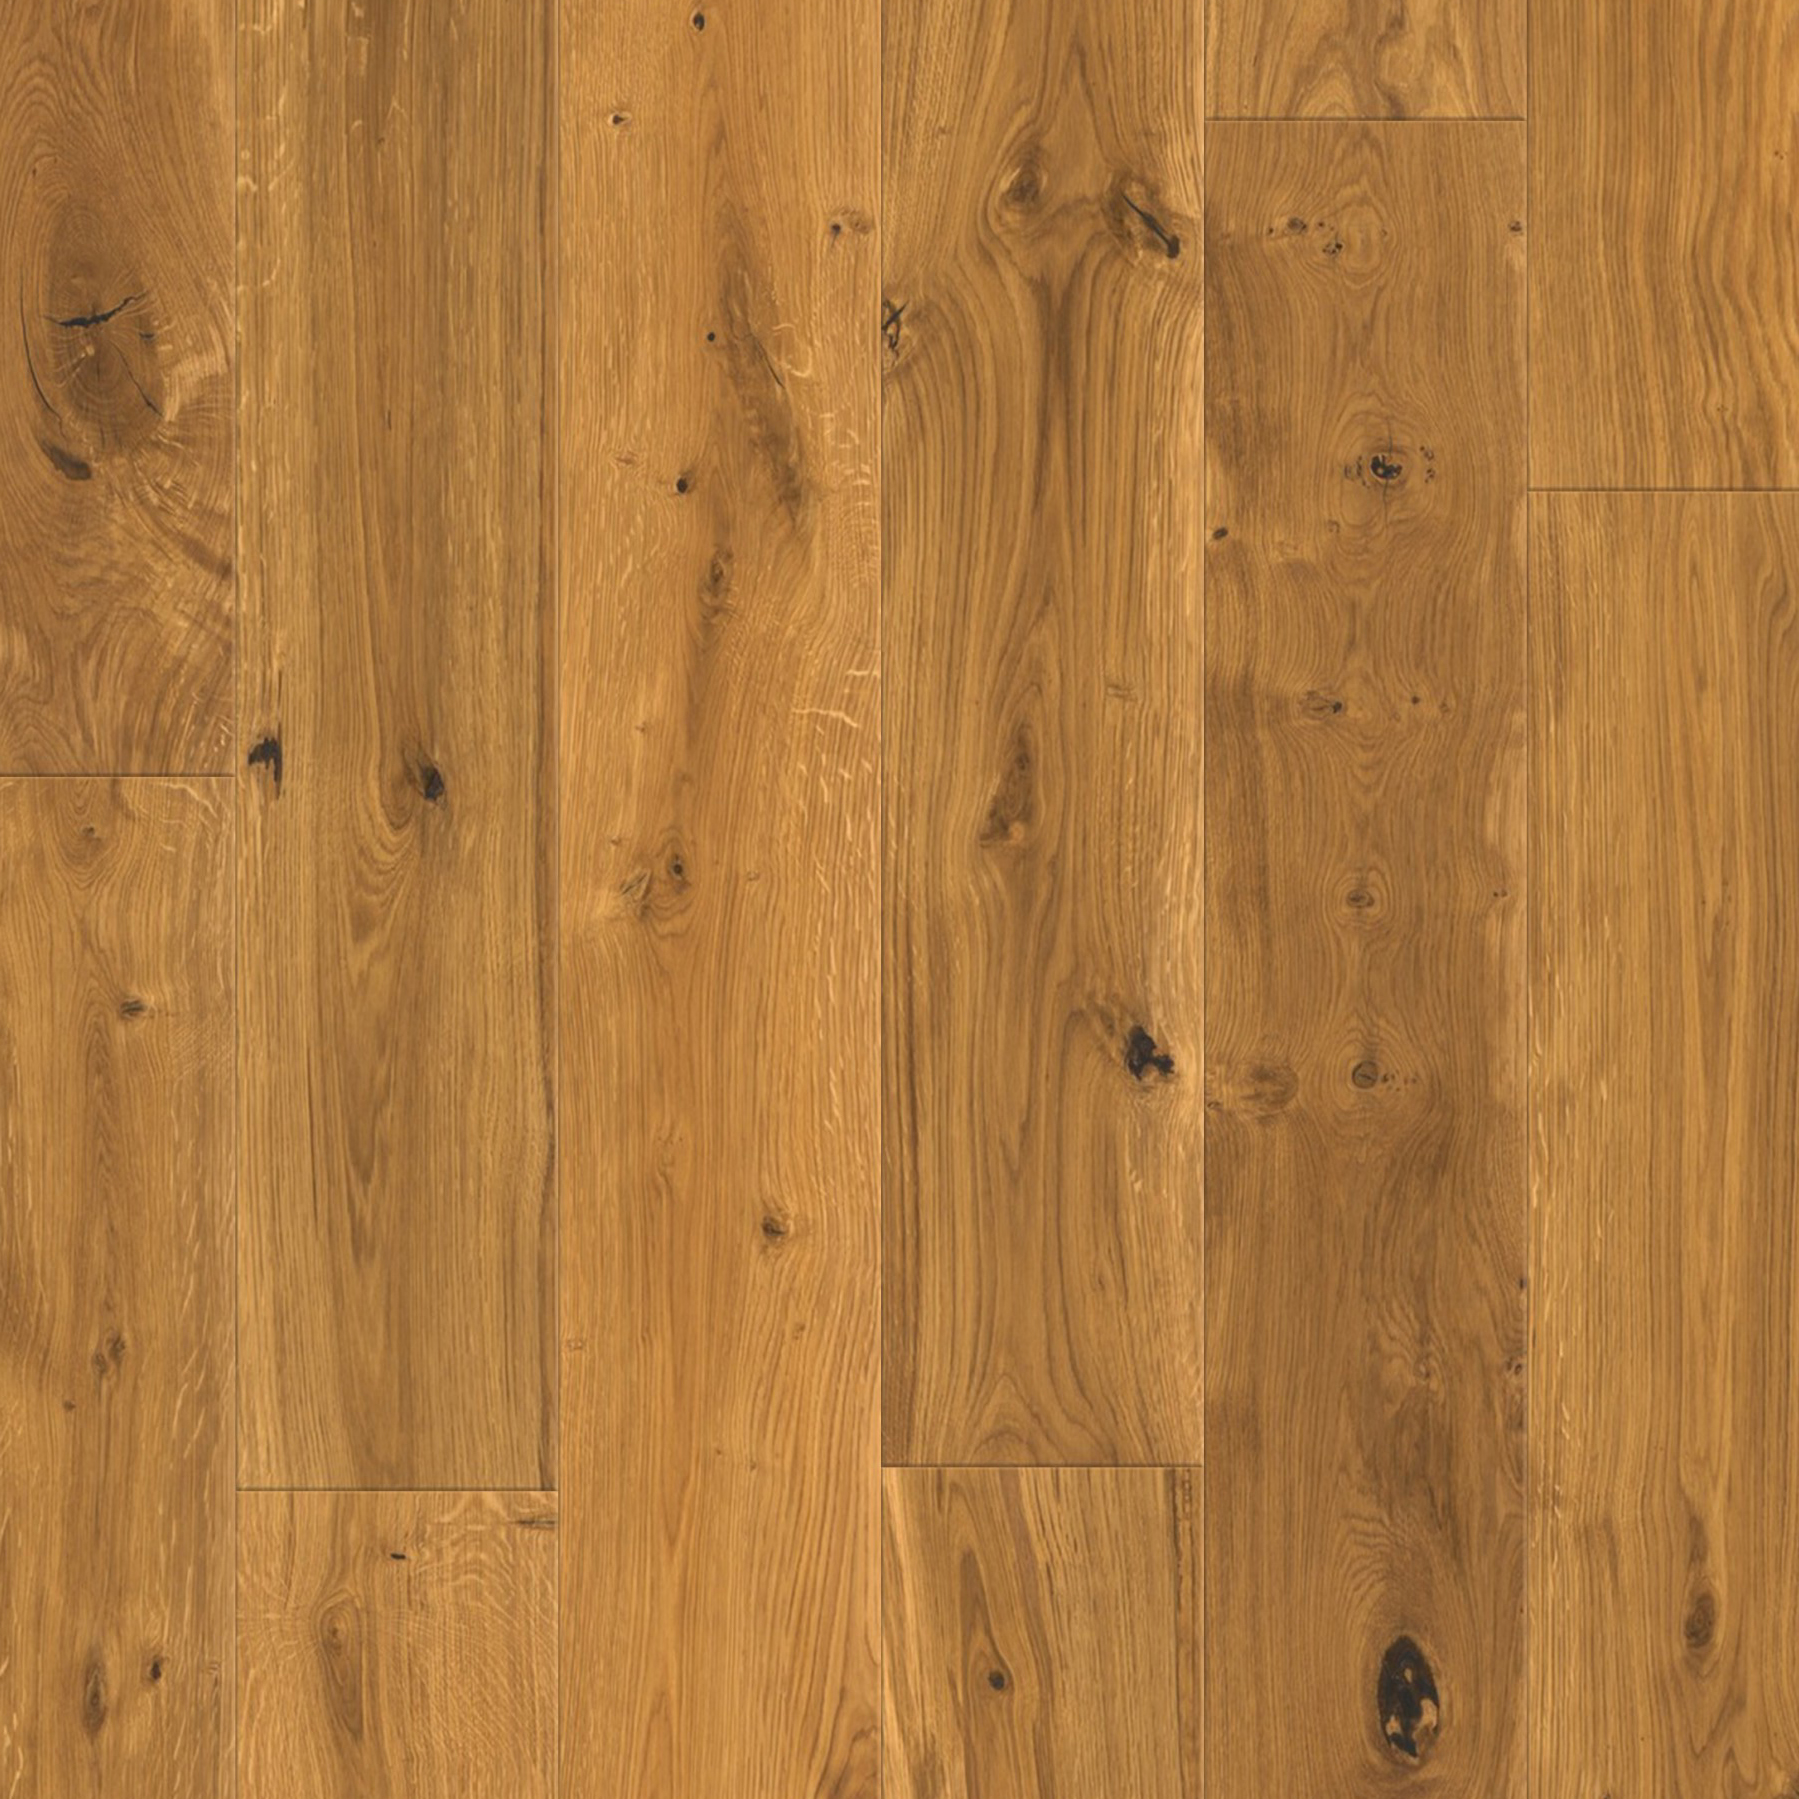 Brushed & Oiled<br>6038